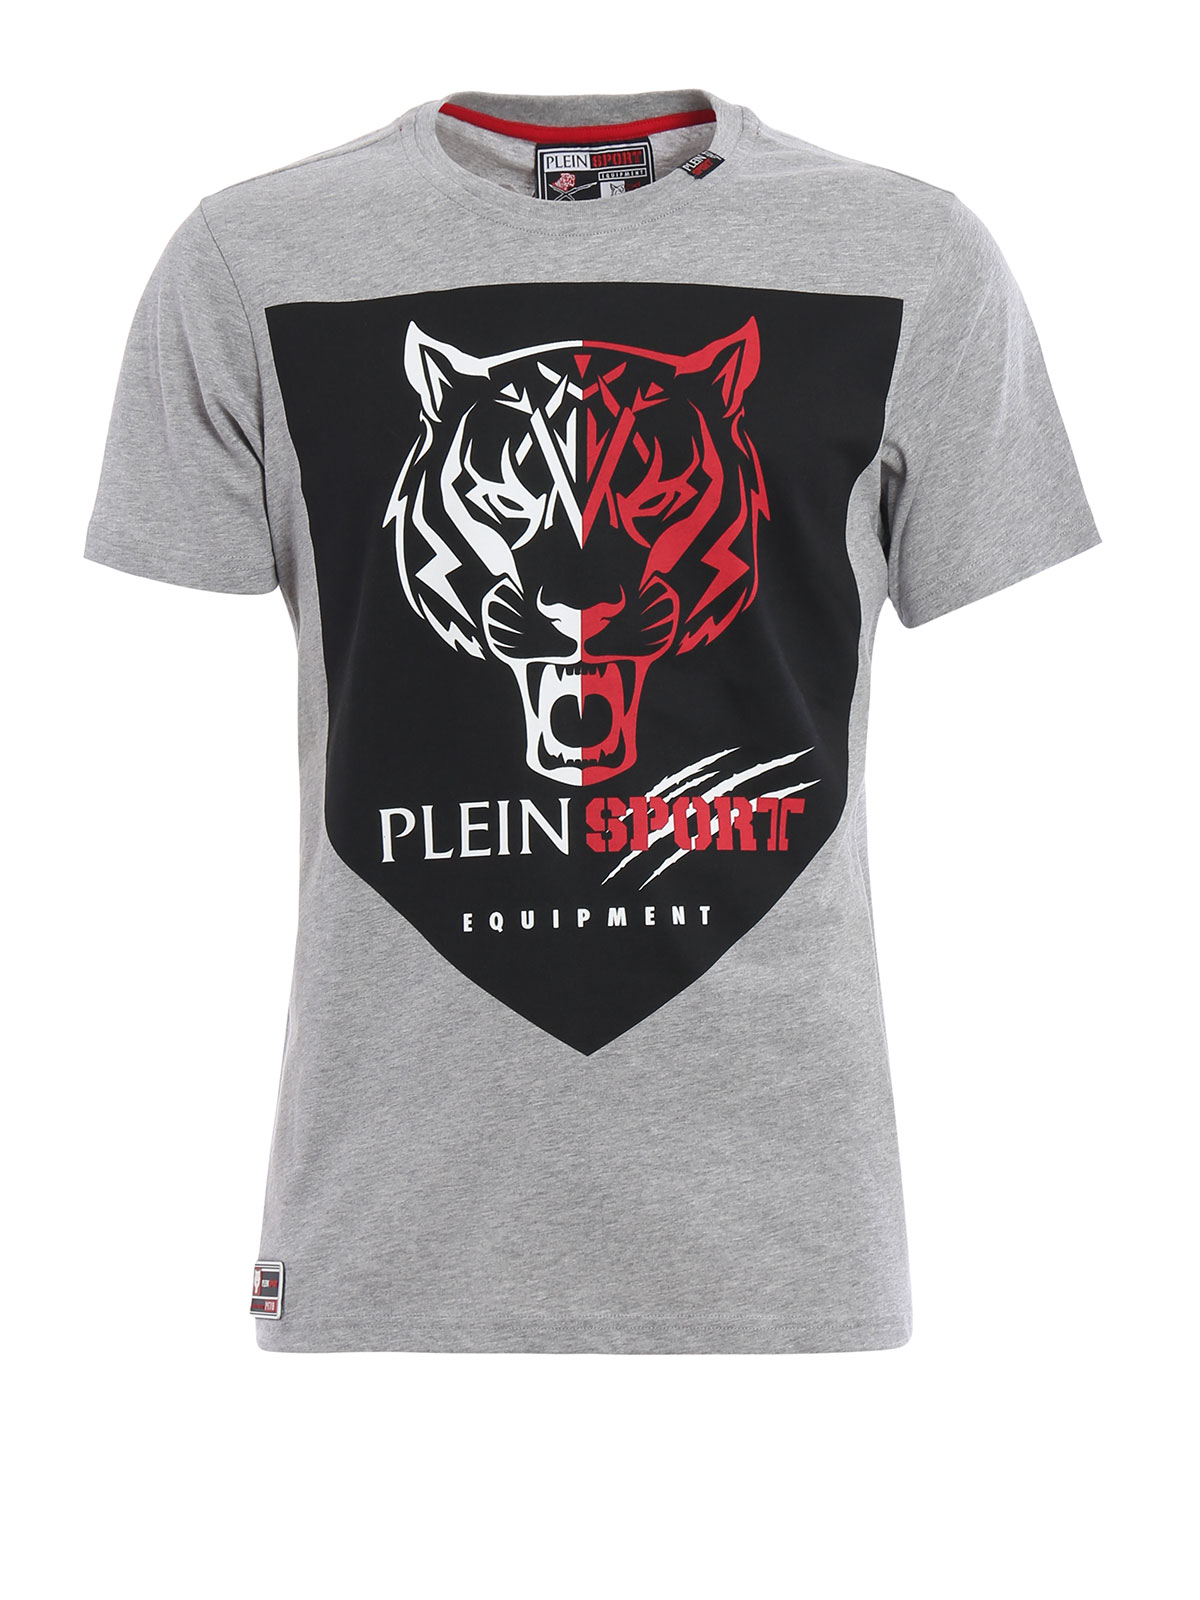 philipp plein high knee plein sport tee t shirts. Black Bedroom Furniture Sets. Home Design Ideas